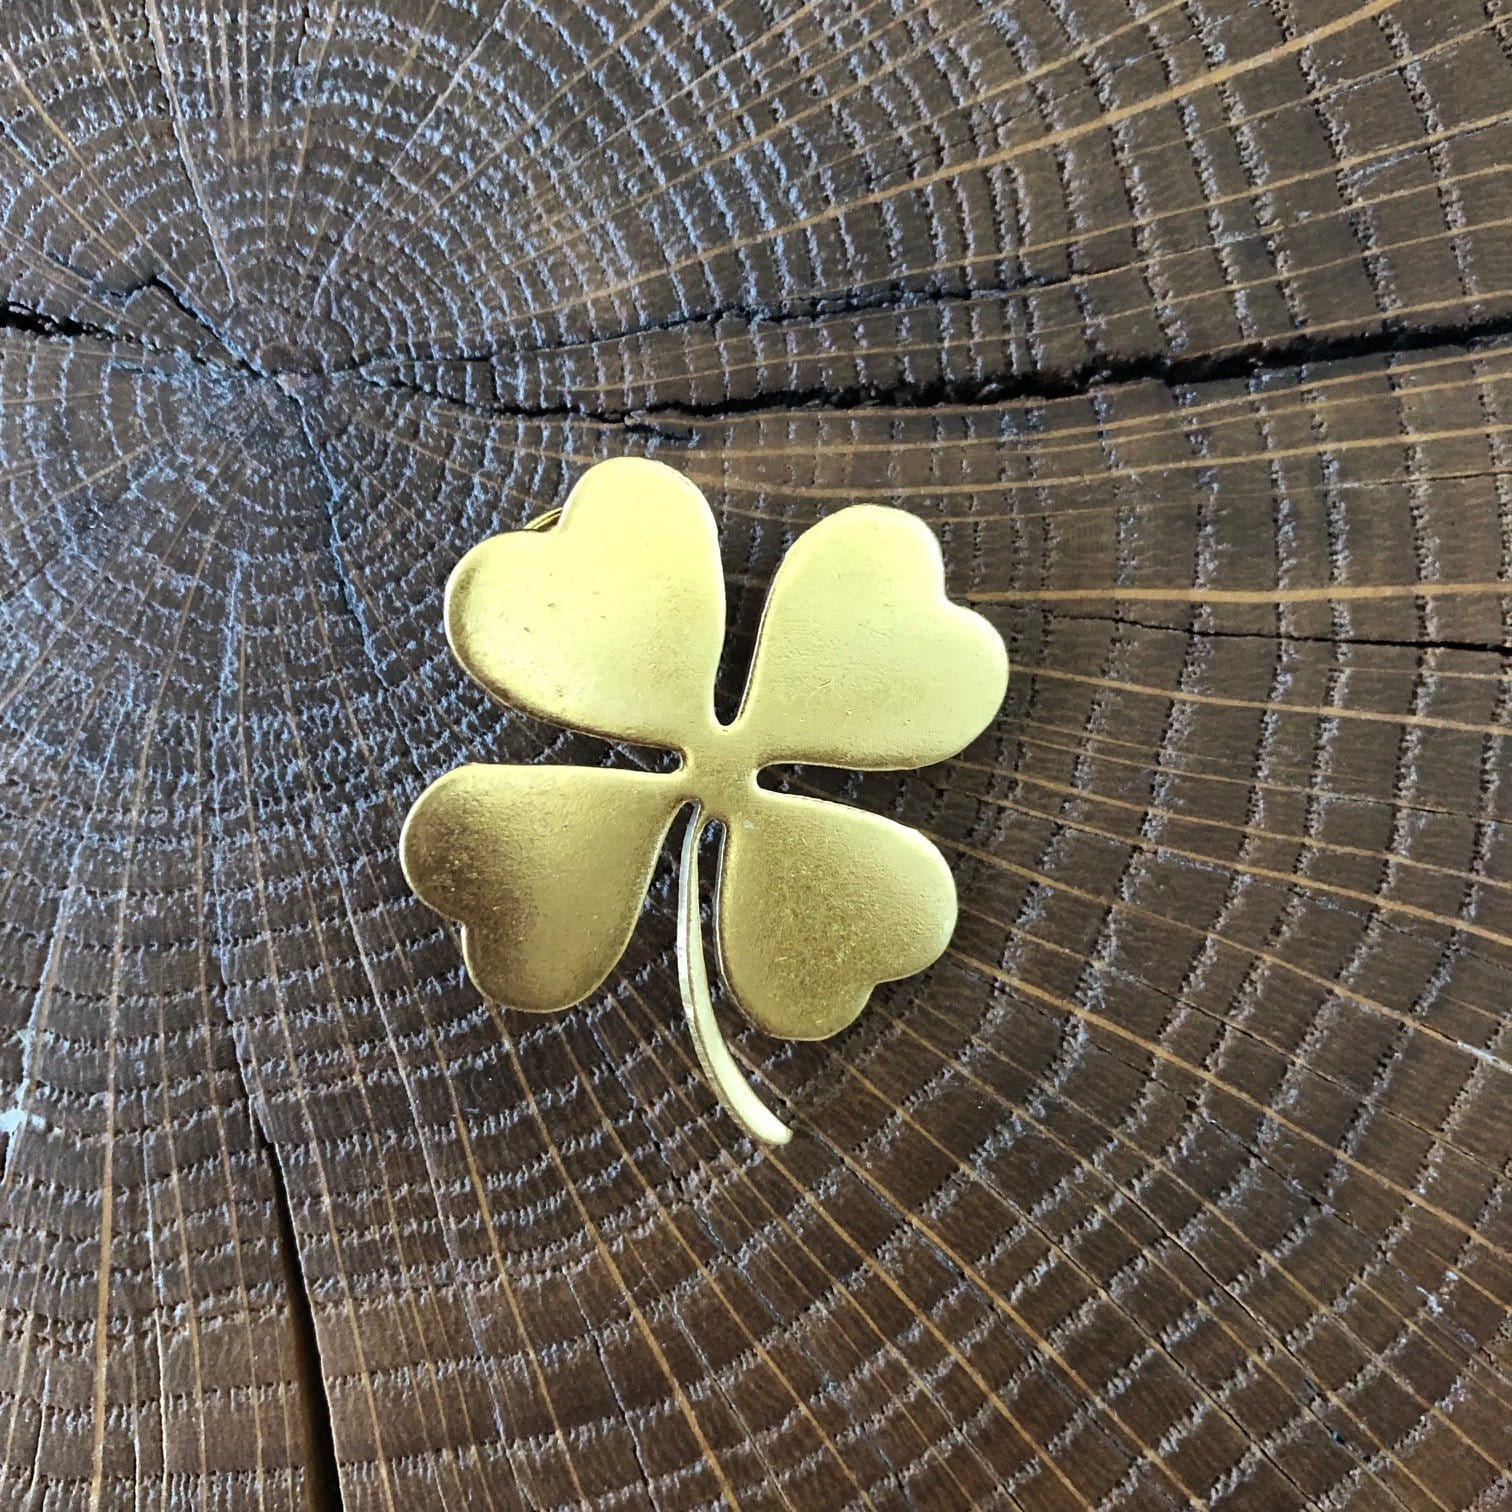 Pin's Trèfle à 4 feuilles doré Evesome - Evesome Golden Leaf Clover Pin